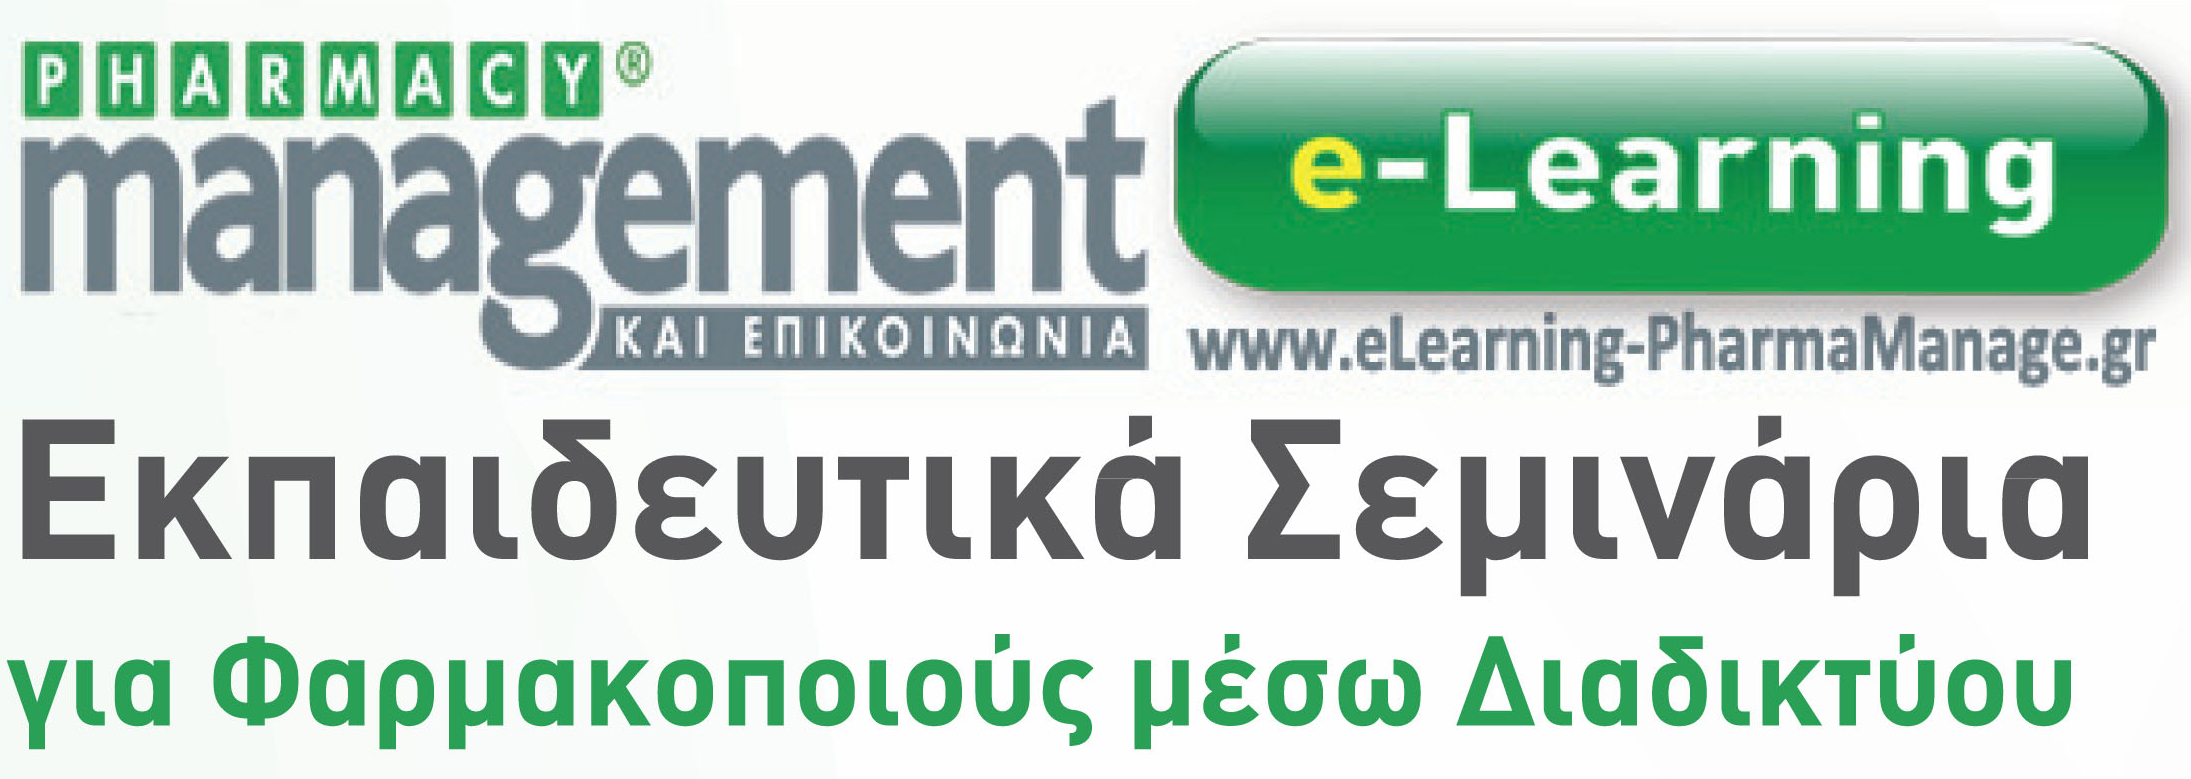 PHARMACY management ΚΑΙ ΕΠΙΚΟΙΝΩΝΙΑ e-Learning